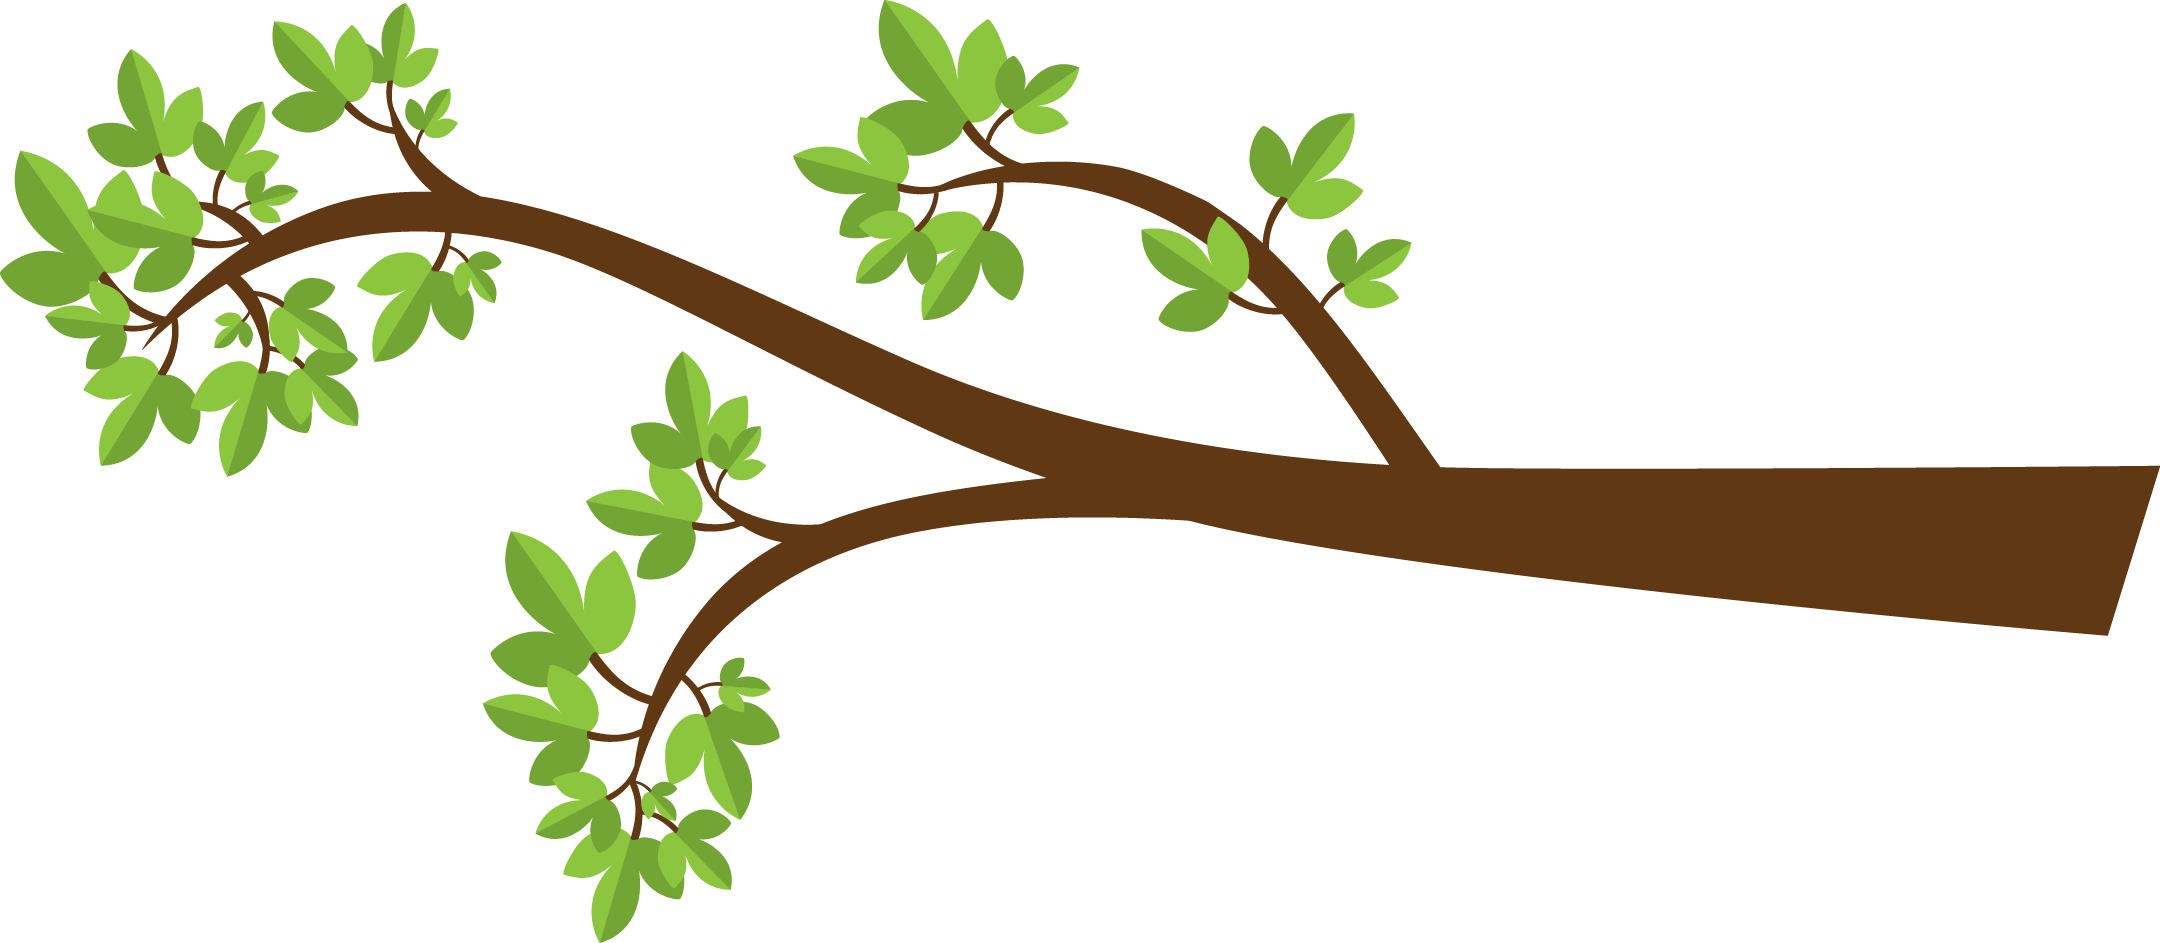 Free clipart apple branch clip royalty free stock Image Of Tree Branch - ClipArt Best | Crafty stuff | Pinterest ... clip royalty free stock